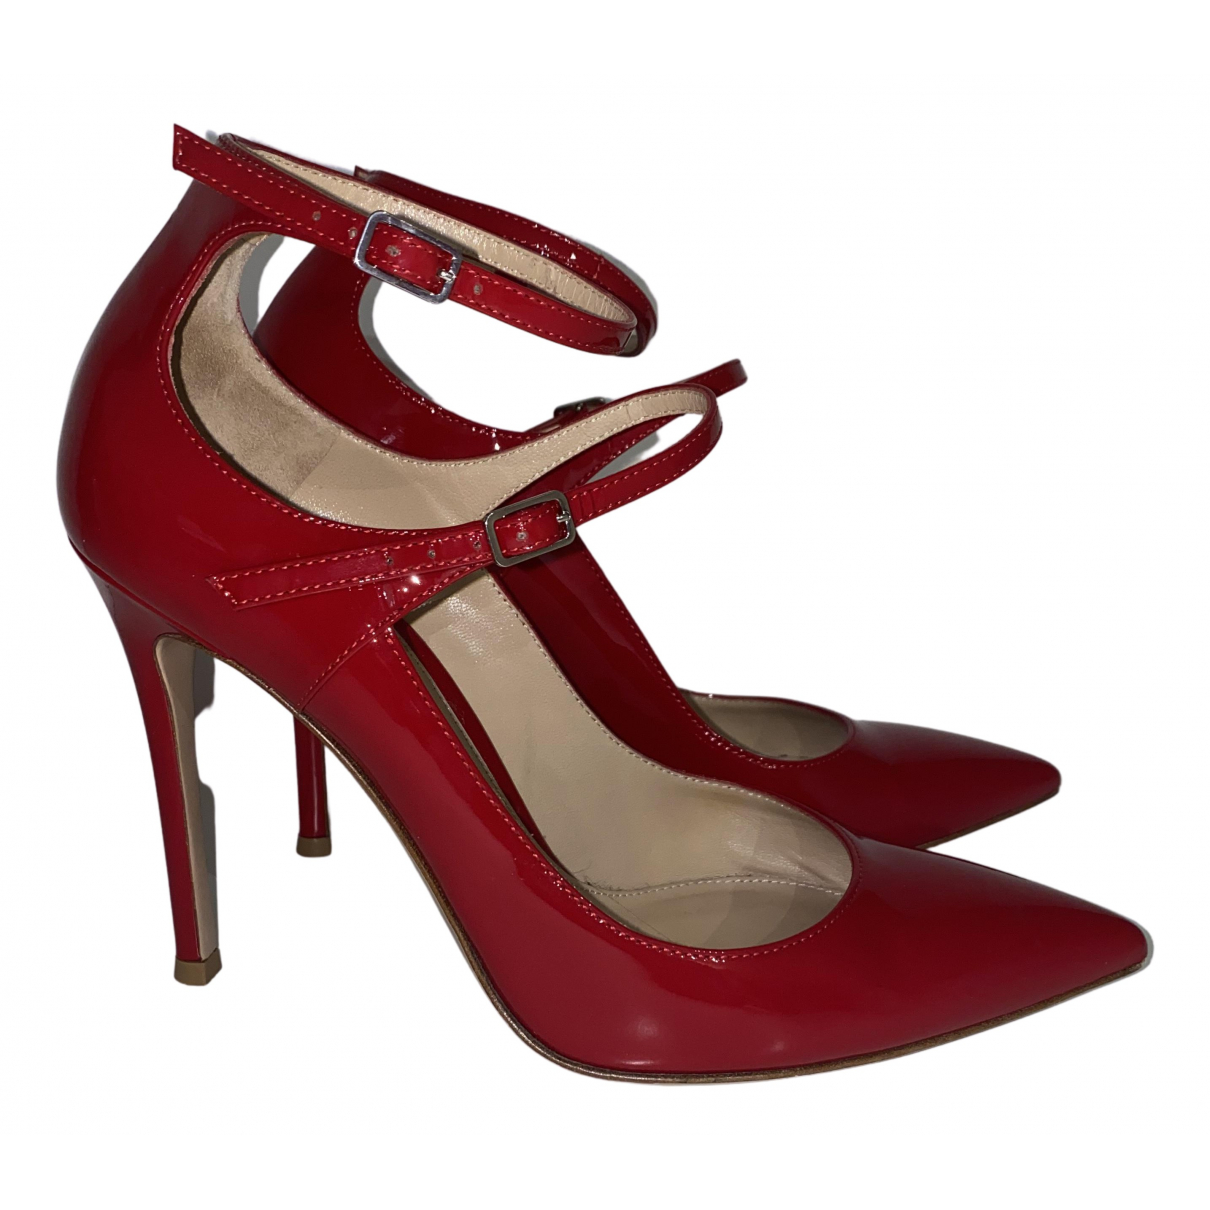 Gianvito Rossi N Red Patent leather Heels for Women 37.5 EU